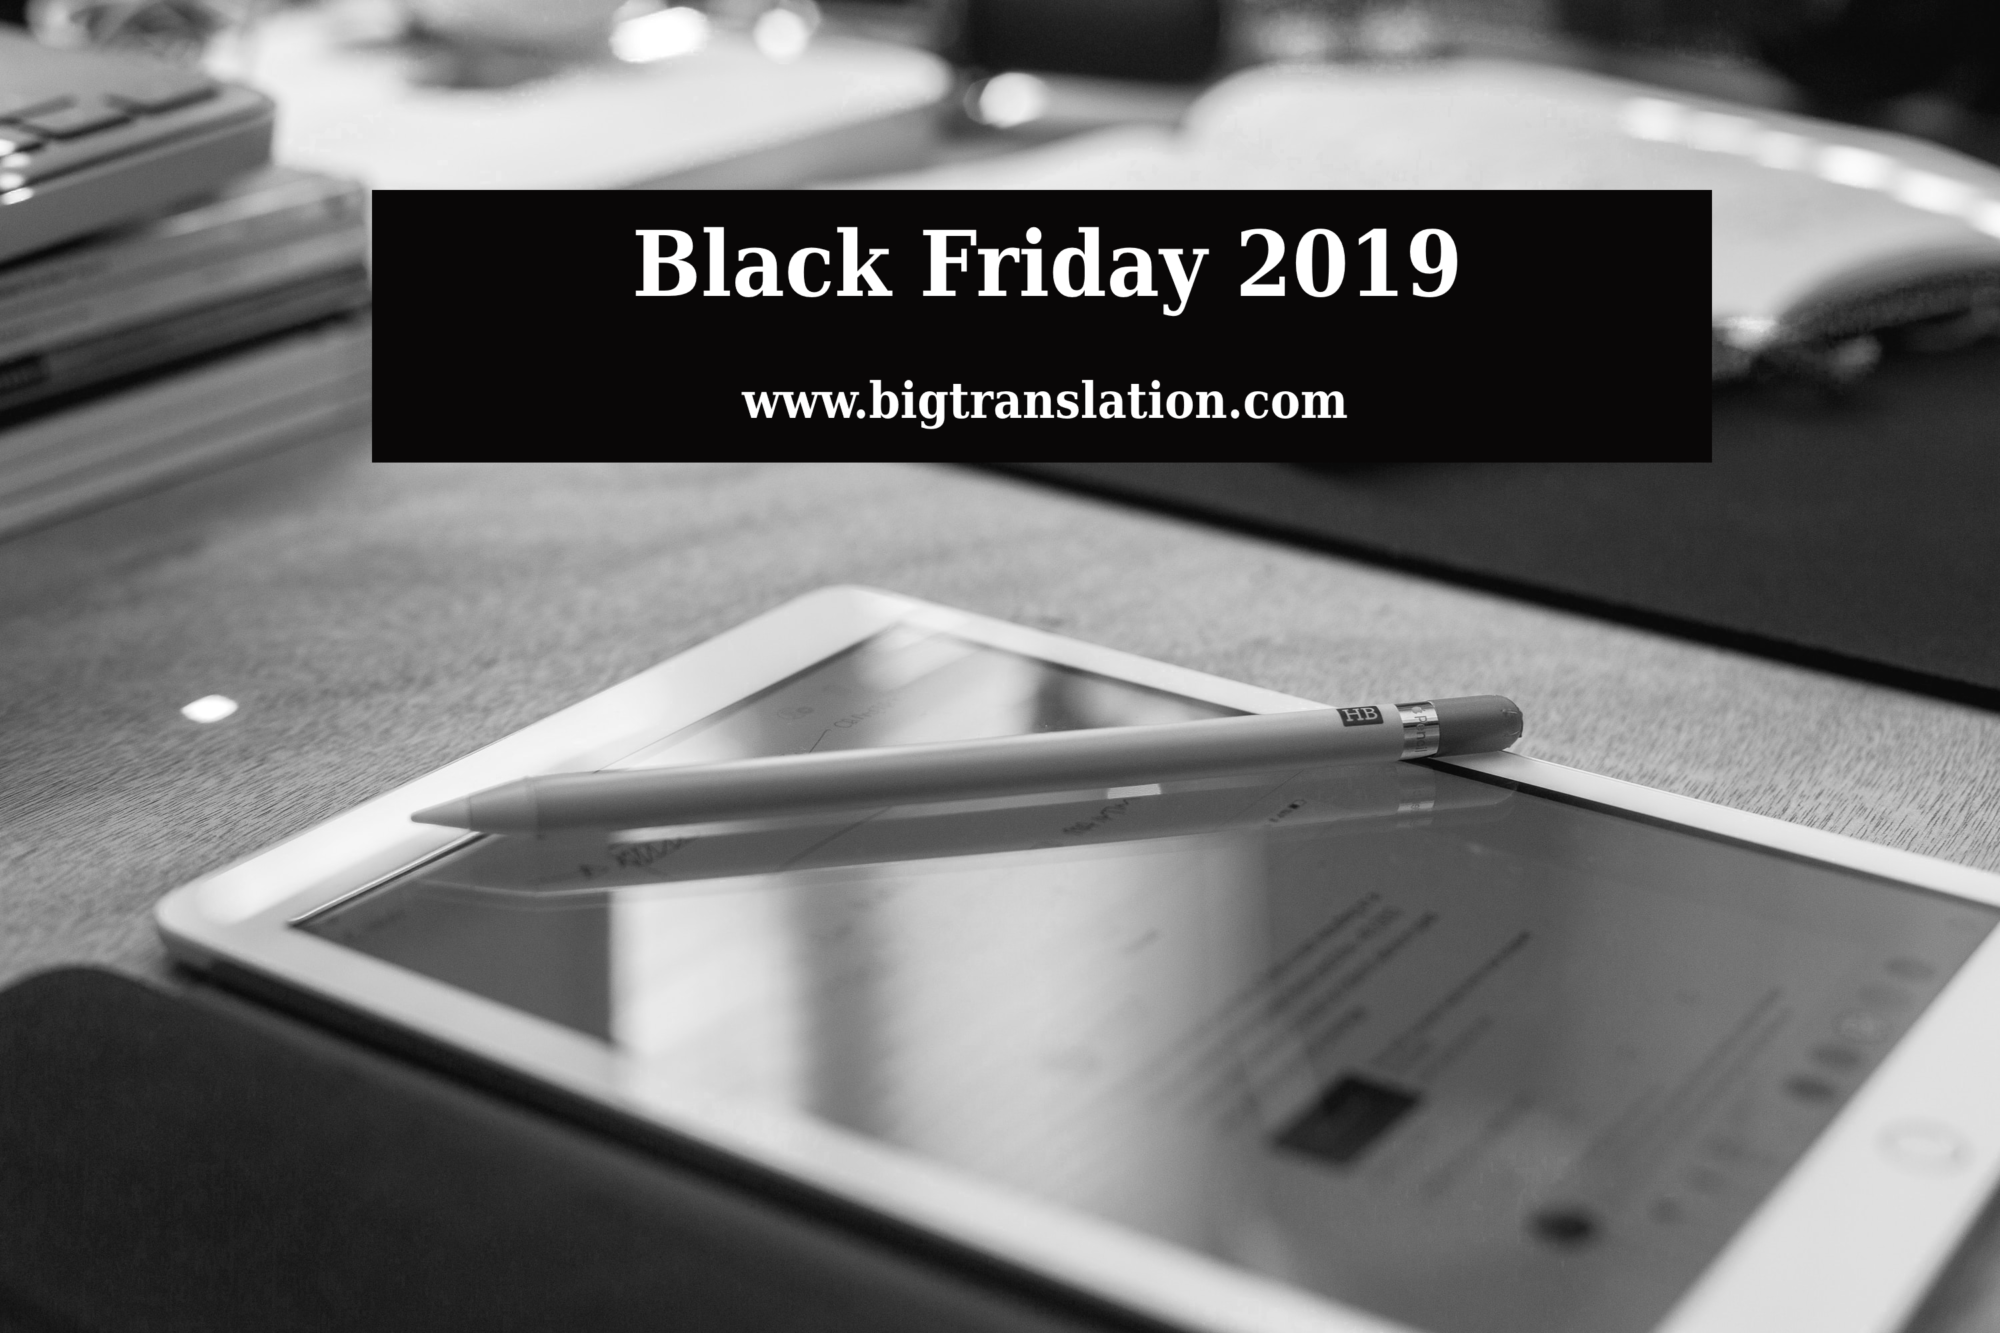 Il Black Friday 2019 sta arrivando… È pronto il tuo business?